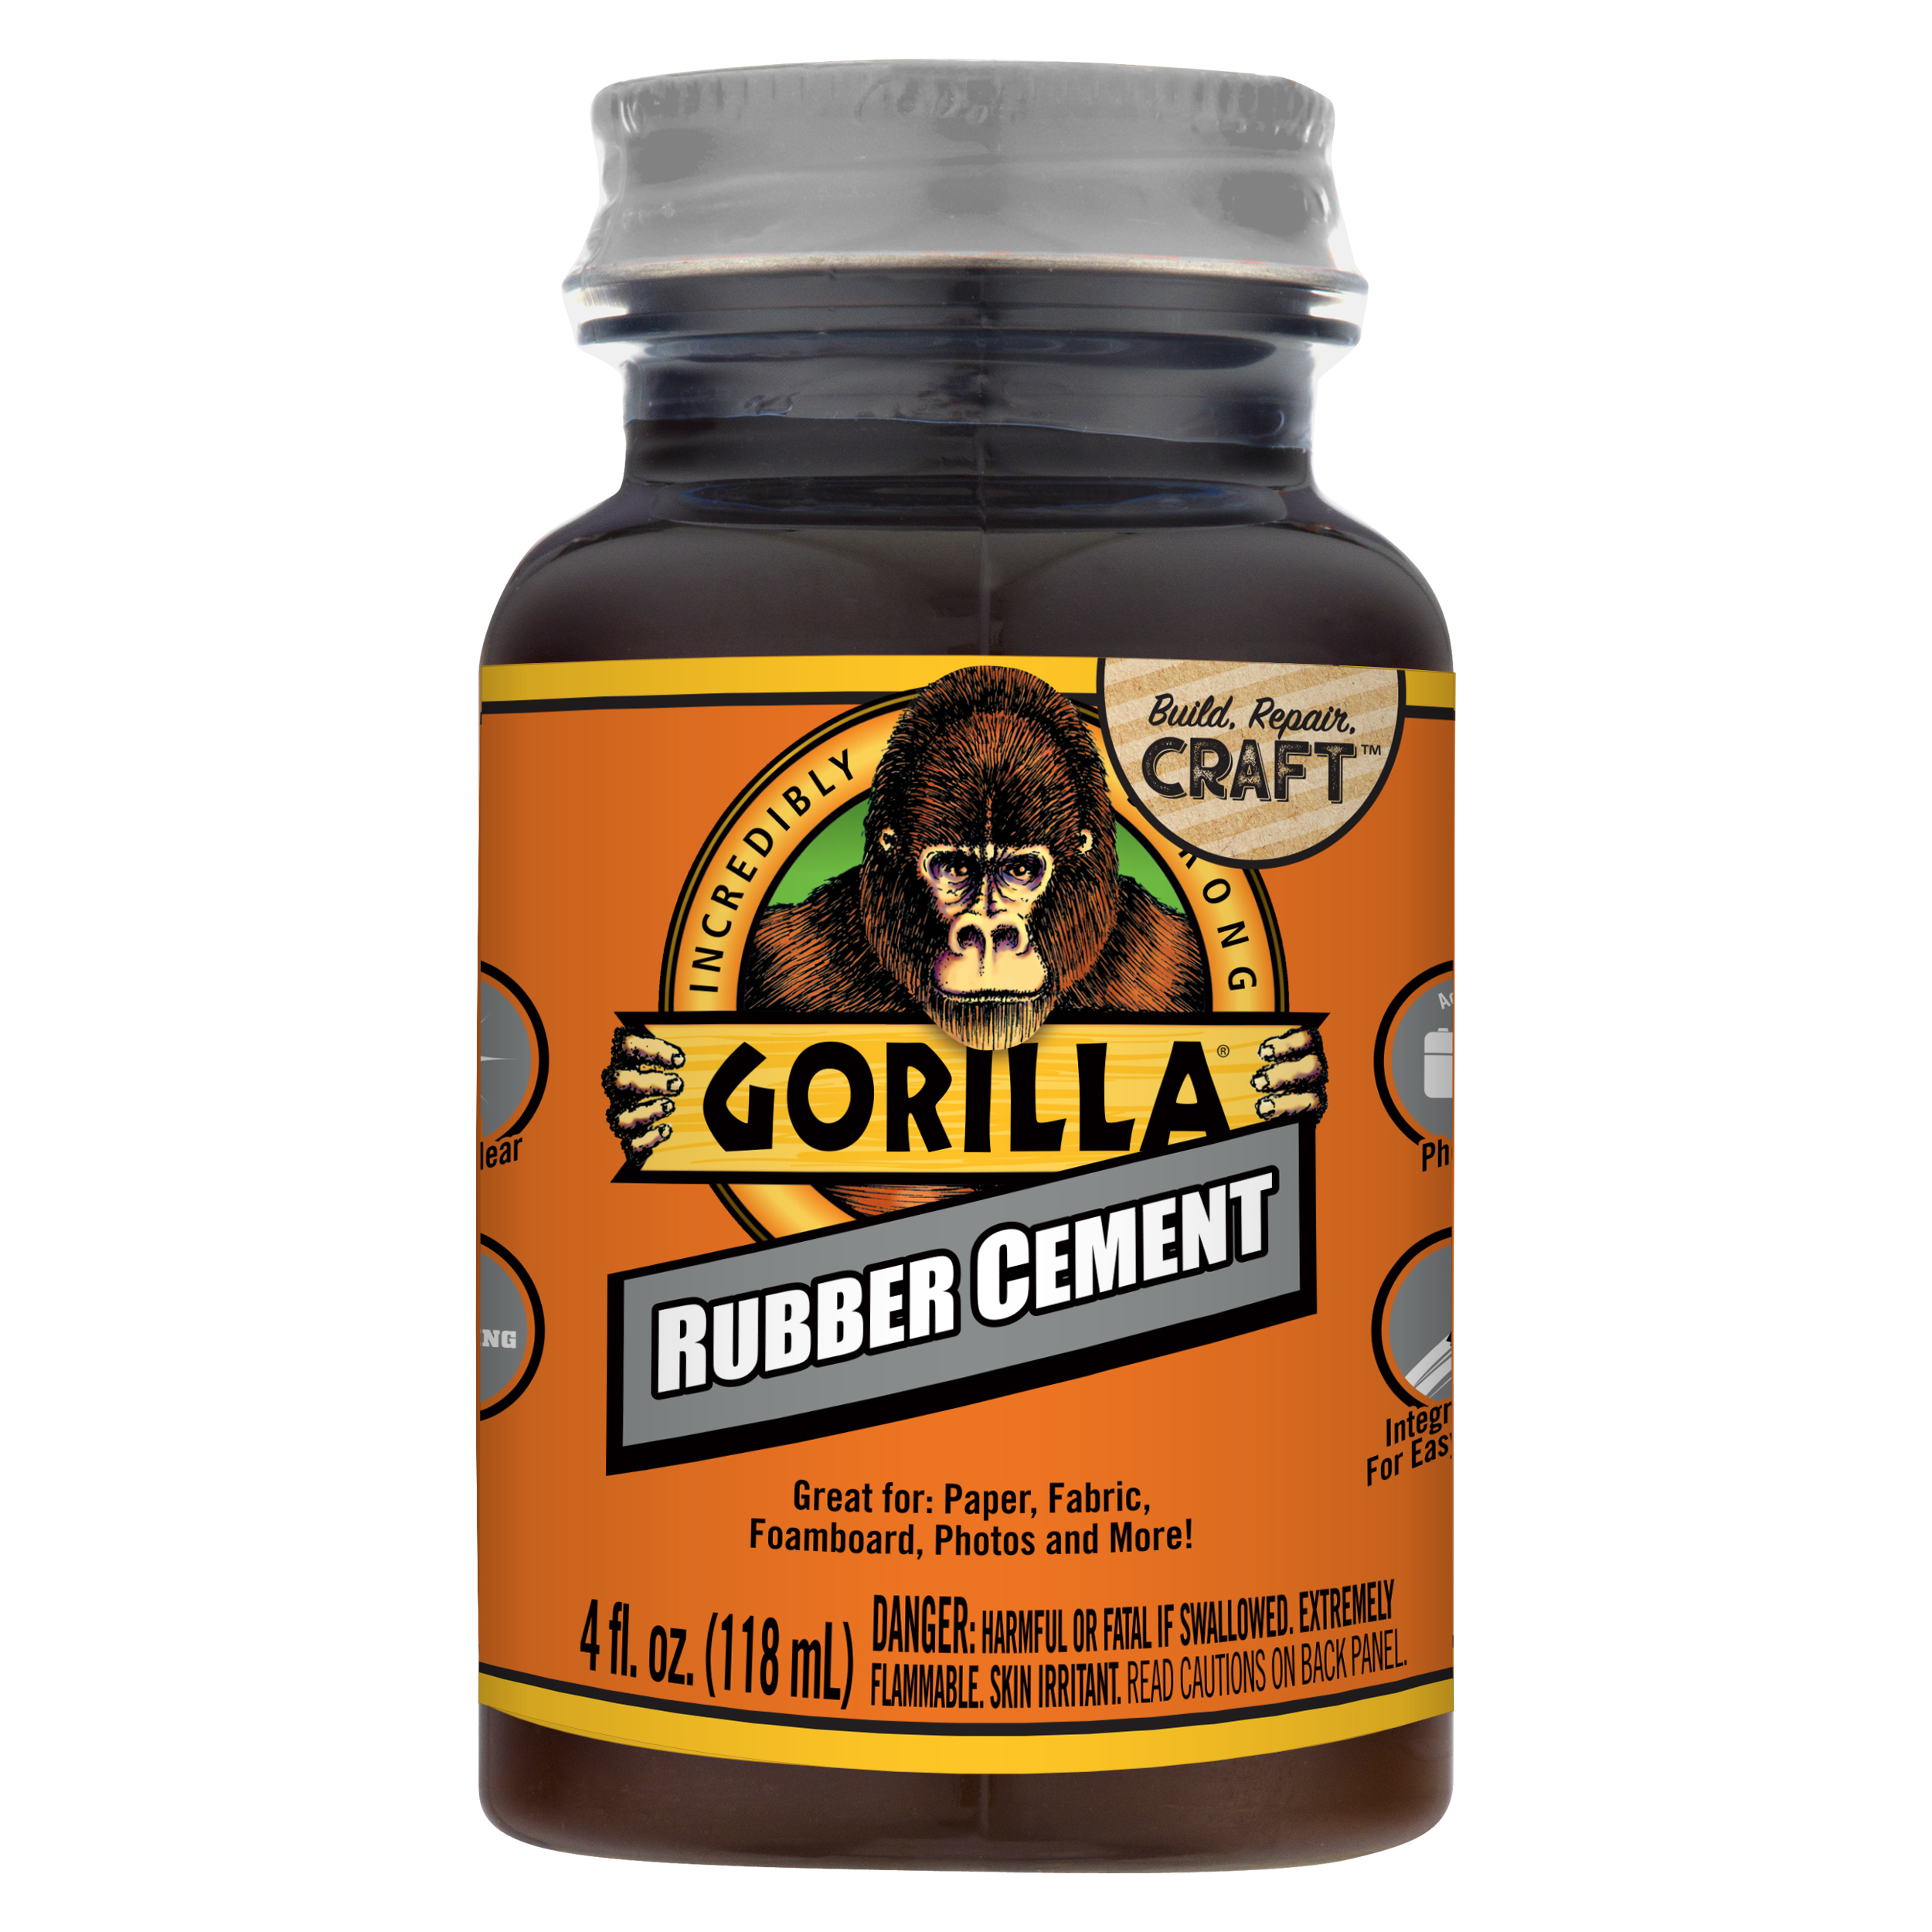 Gorilla Rubber Cement